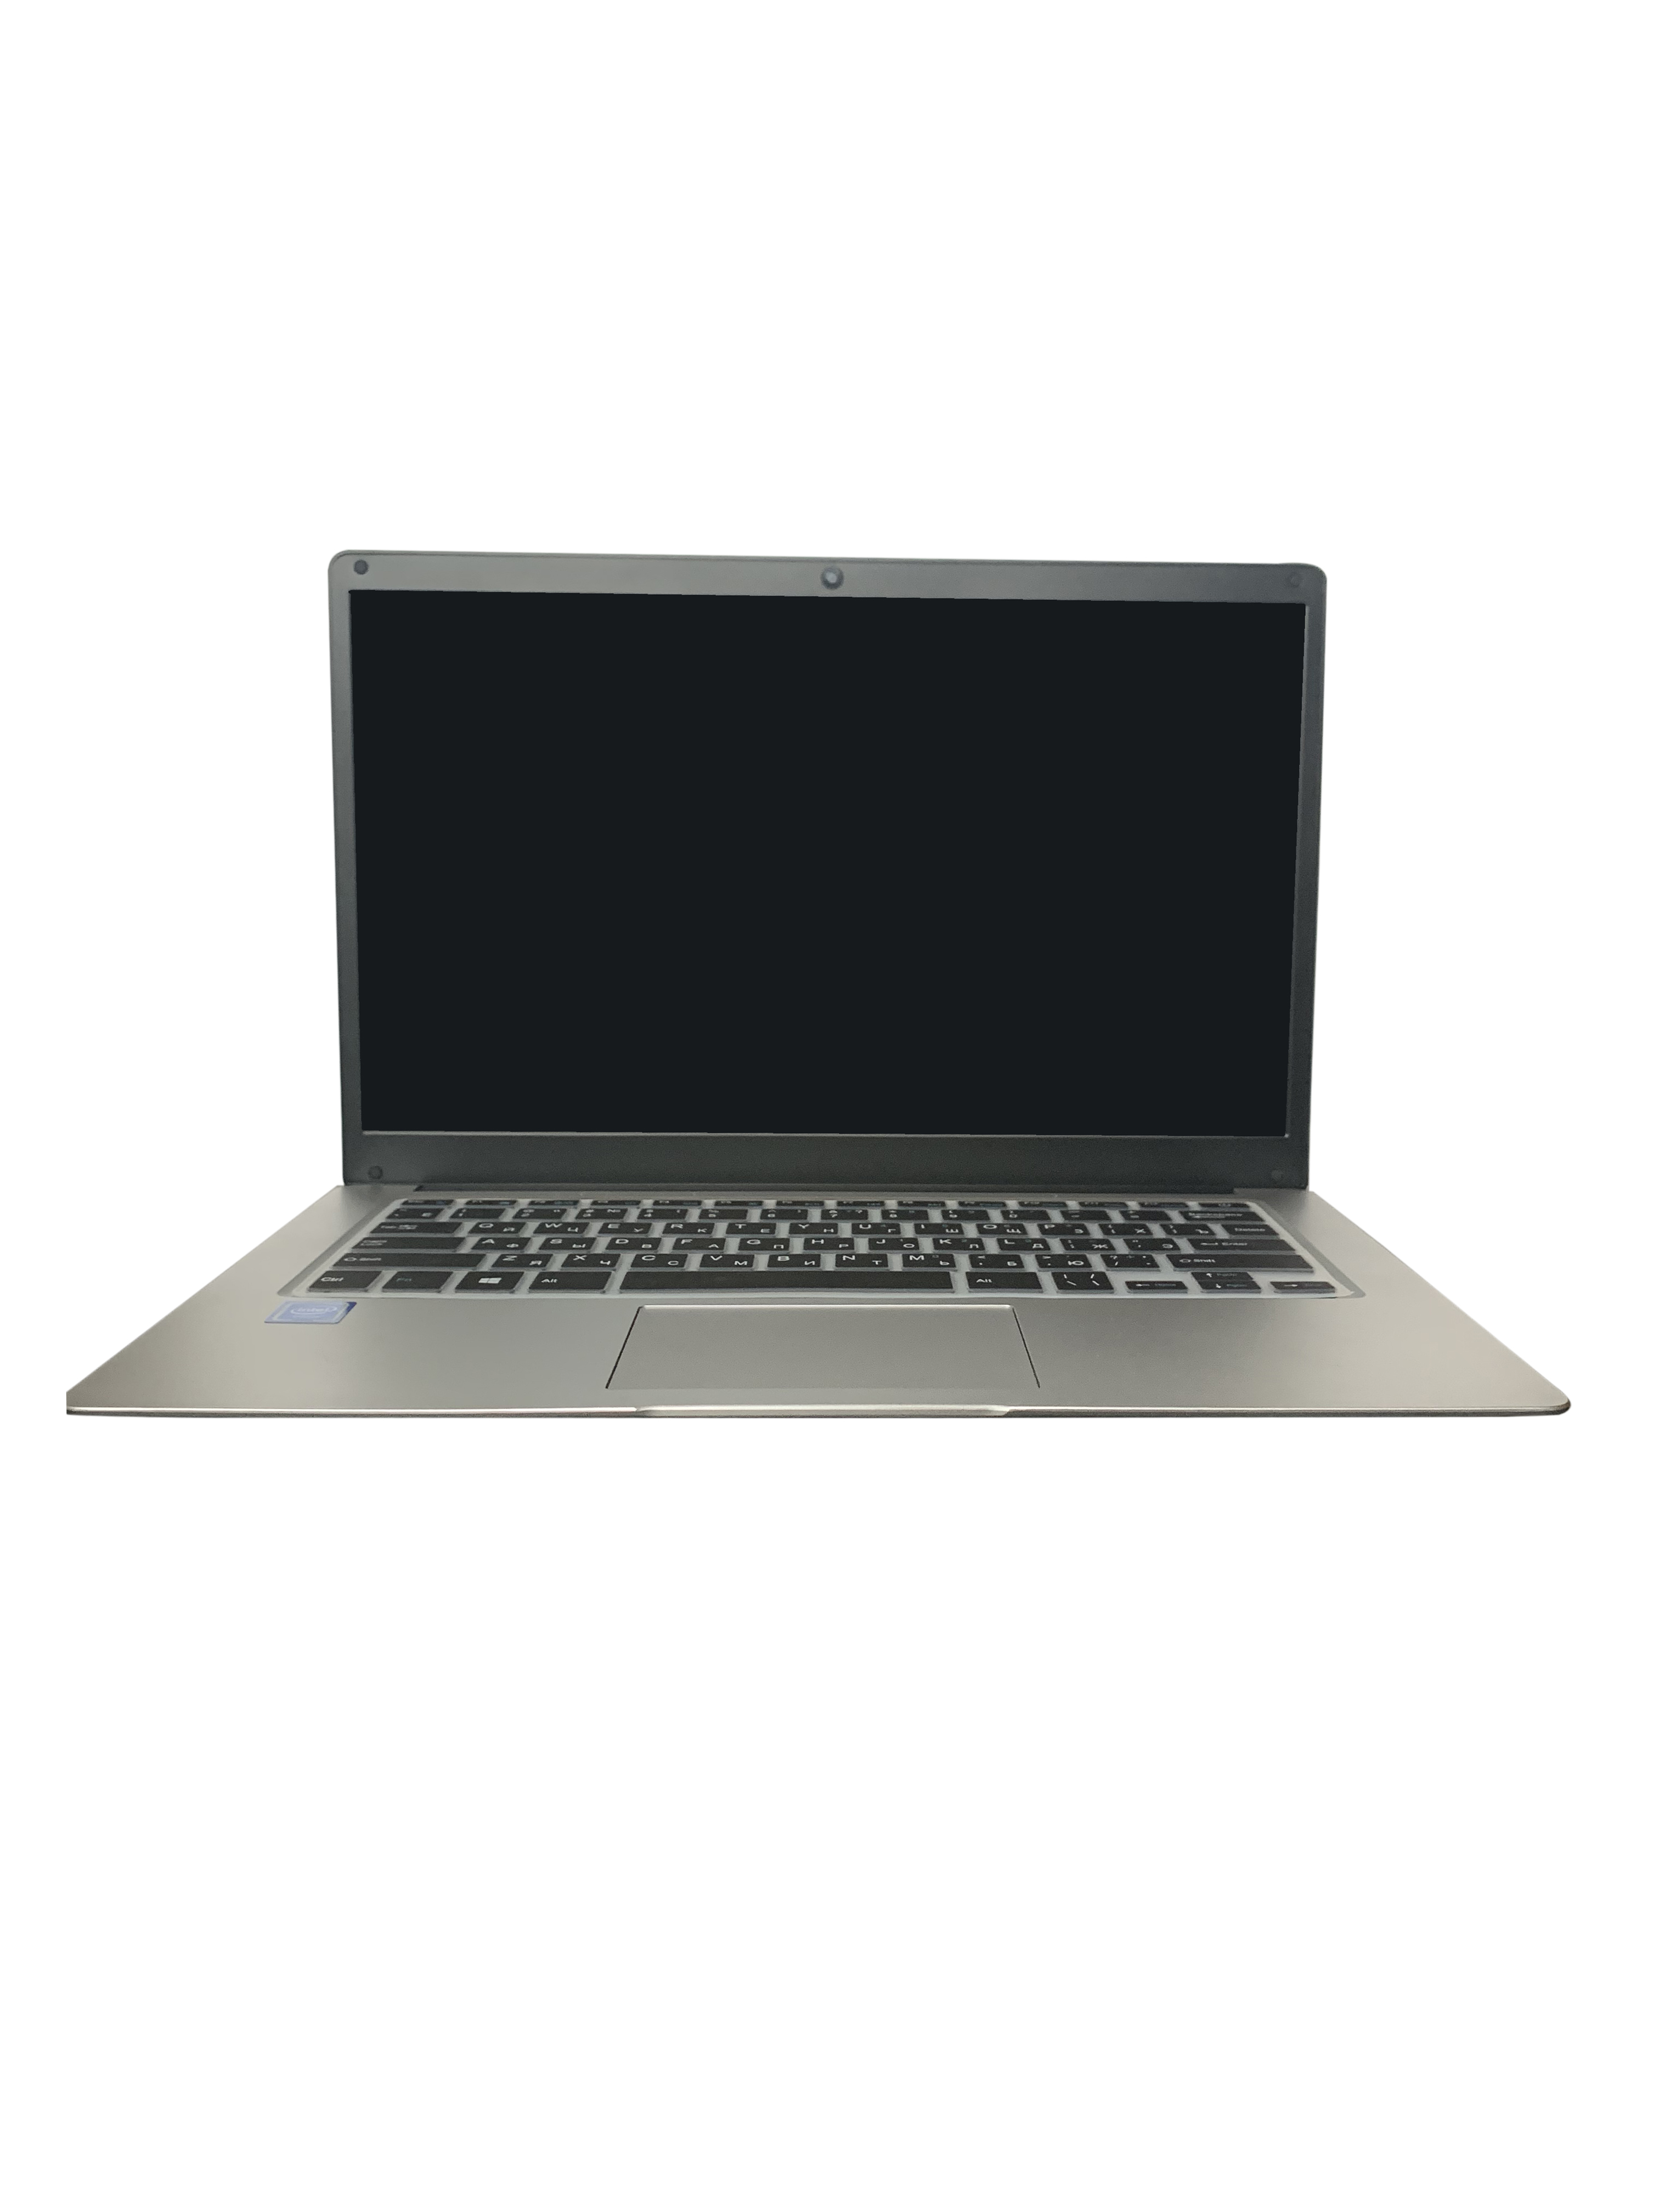 "Ноутбук Echips Simple 14"" 1366x768, Celeron N3350 2x1.1 Ghz (Up to 2.3Ghz),6GB, SSD 64Gb[DOS]"